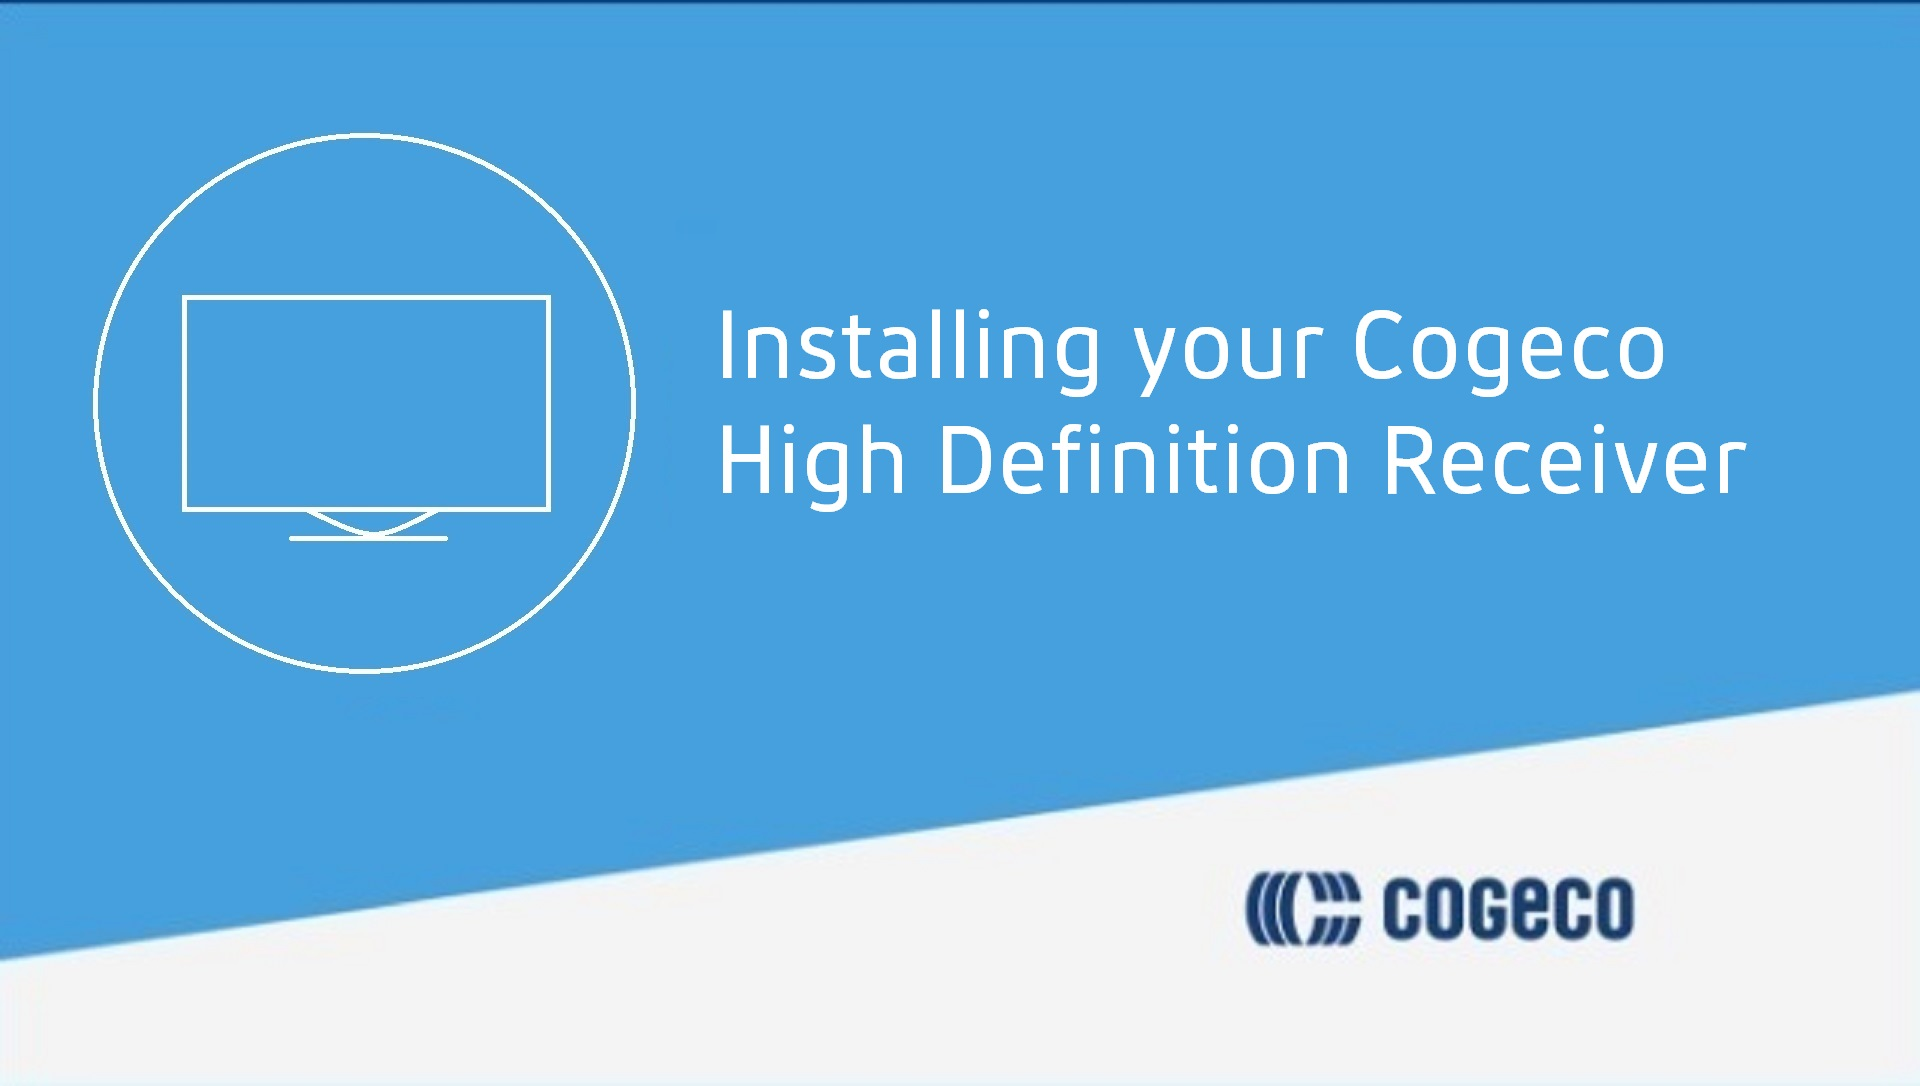 How do I set up my HD receiver from Cogeco?